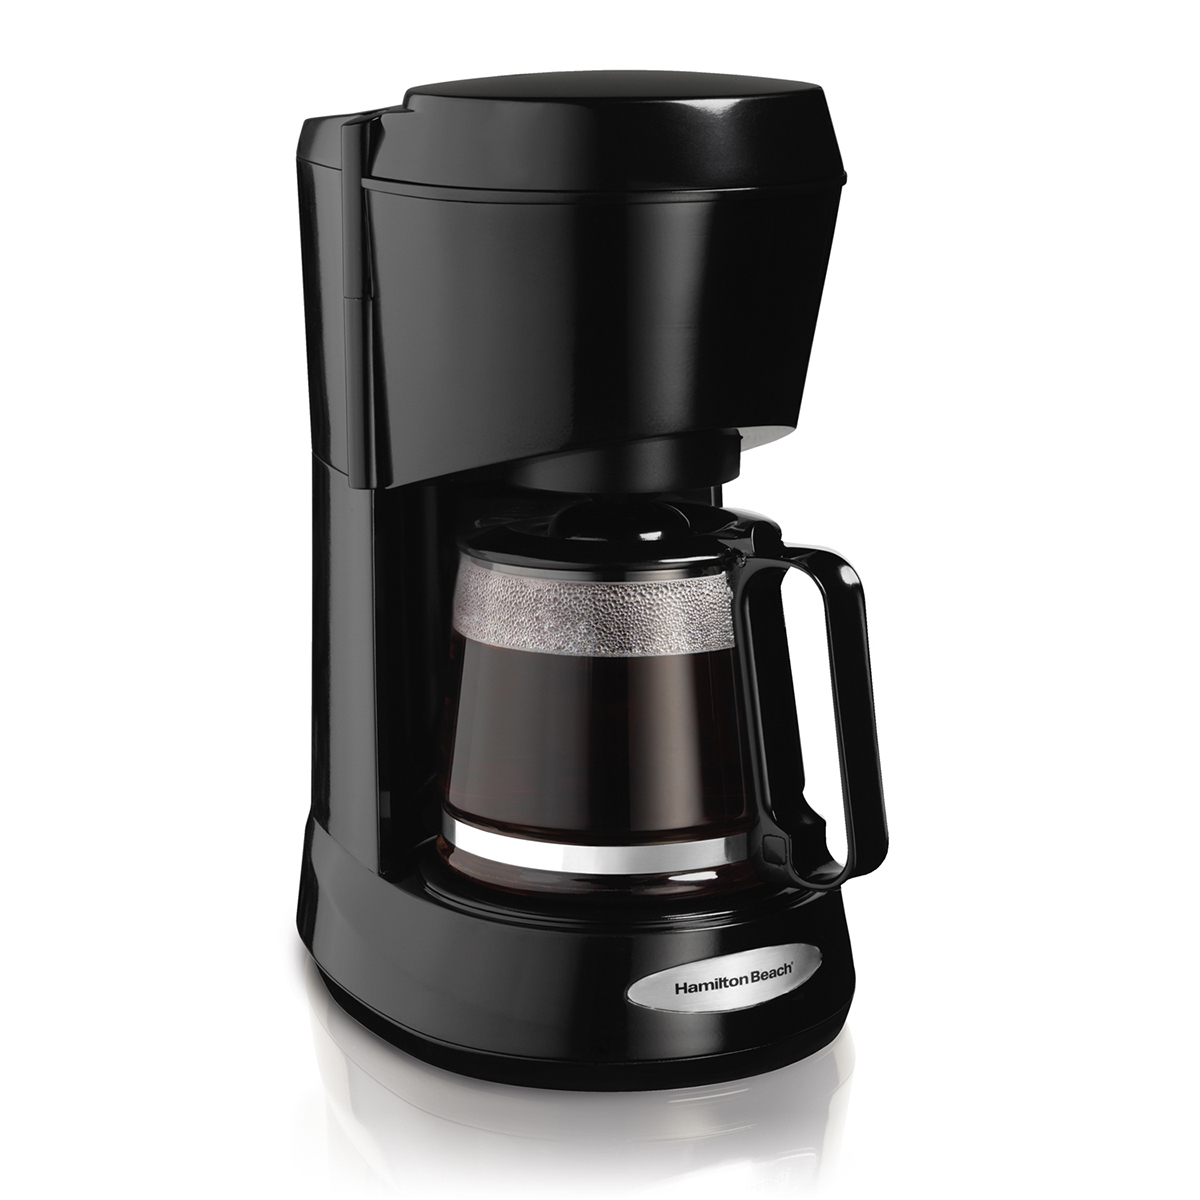 Hamilton Beach 5 Cup Personal Coffee Maker Black 48136